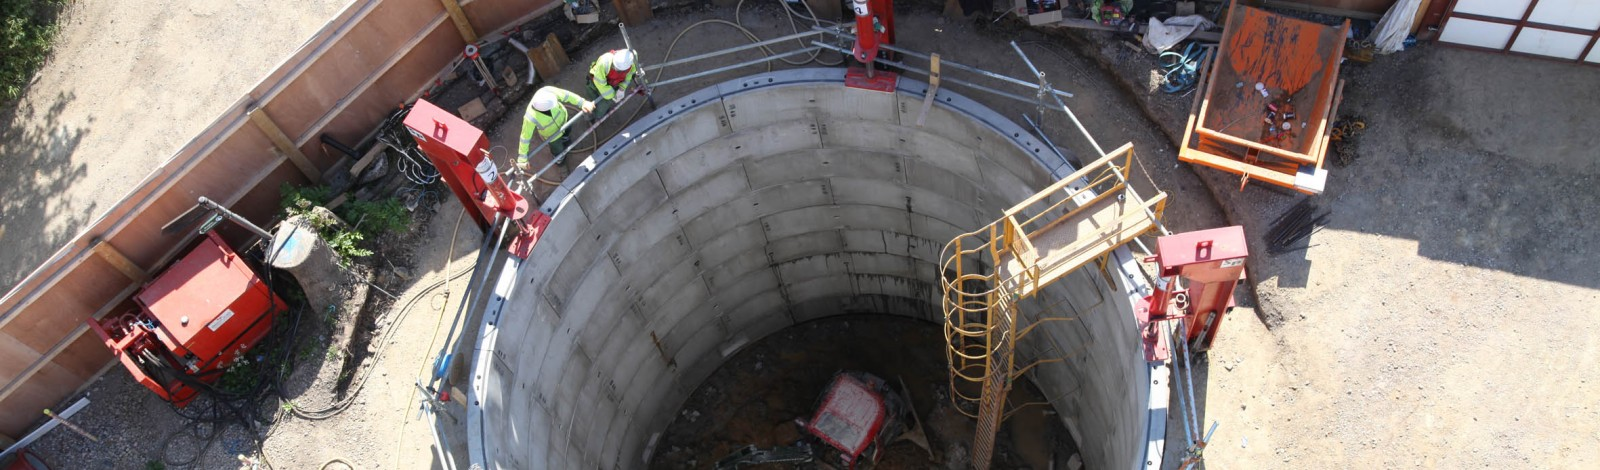 Harefield Road Flood Alleviation Project – underground offline storage of combined sewer flows - Clancy Docwra